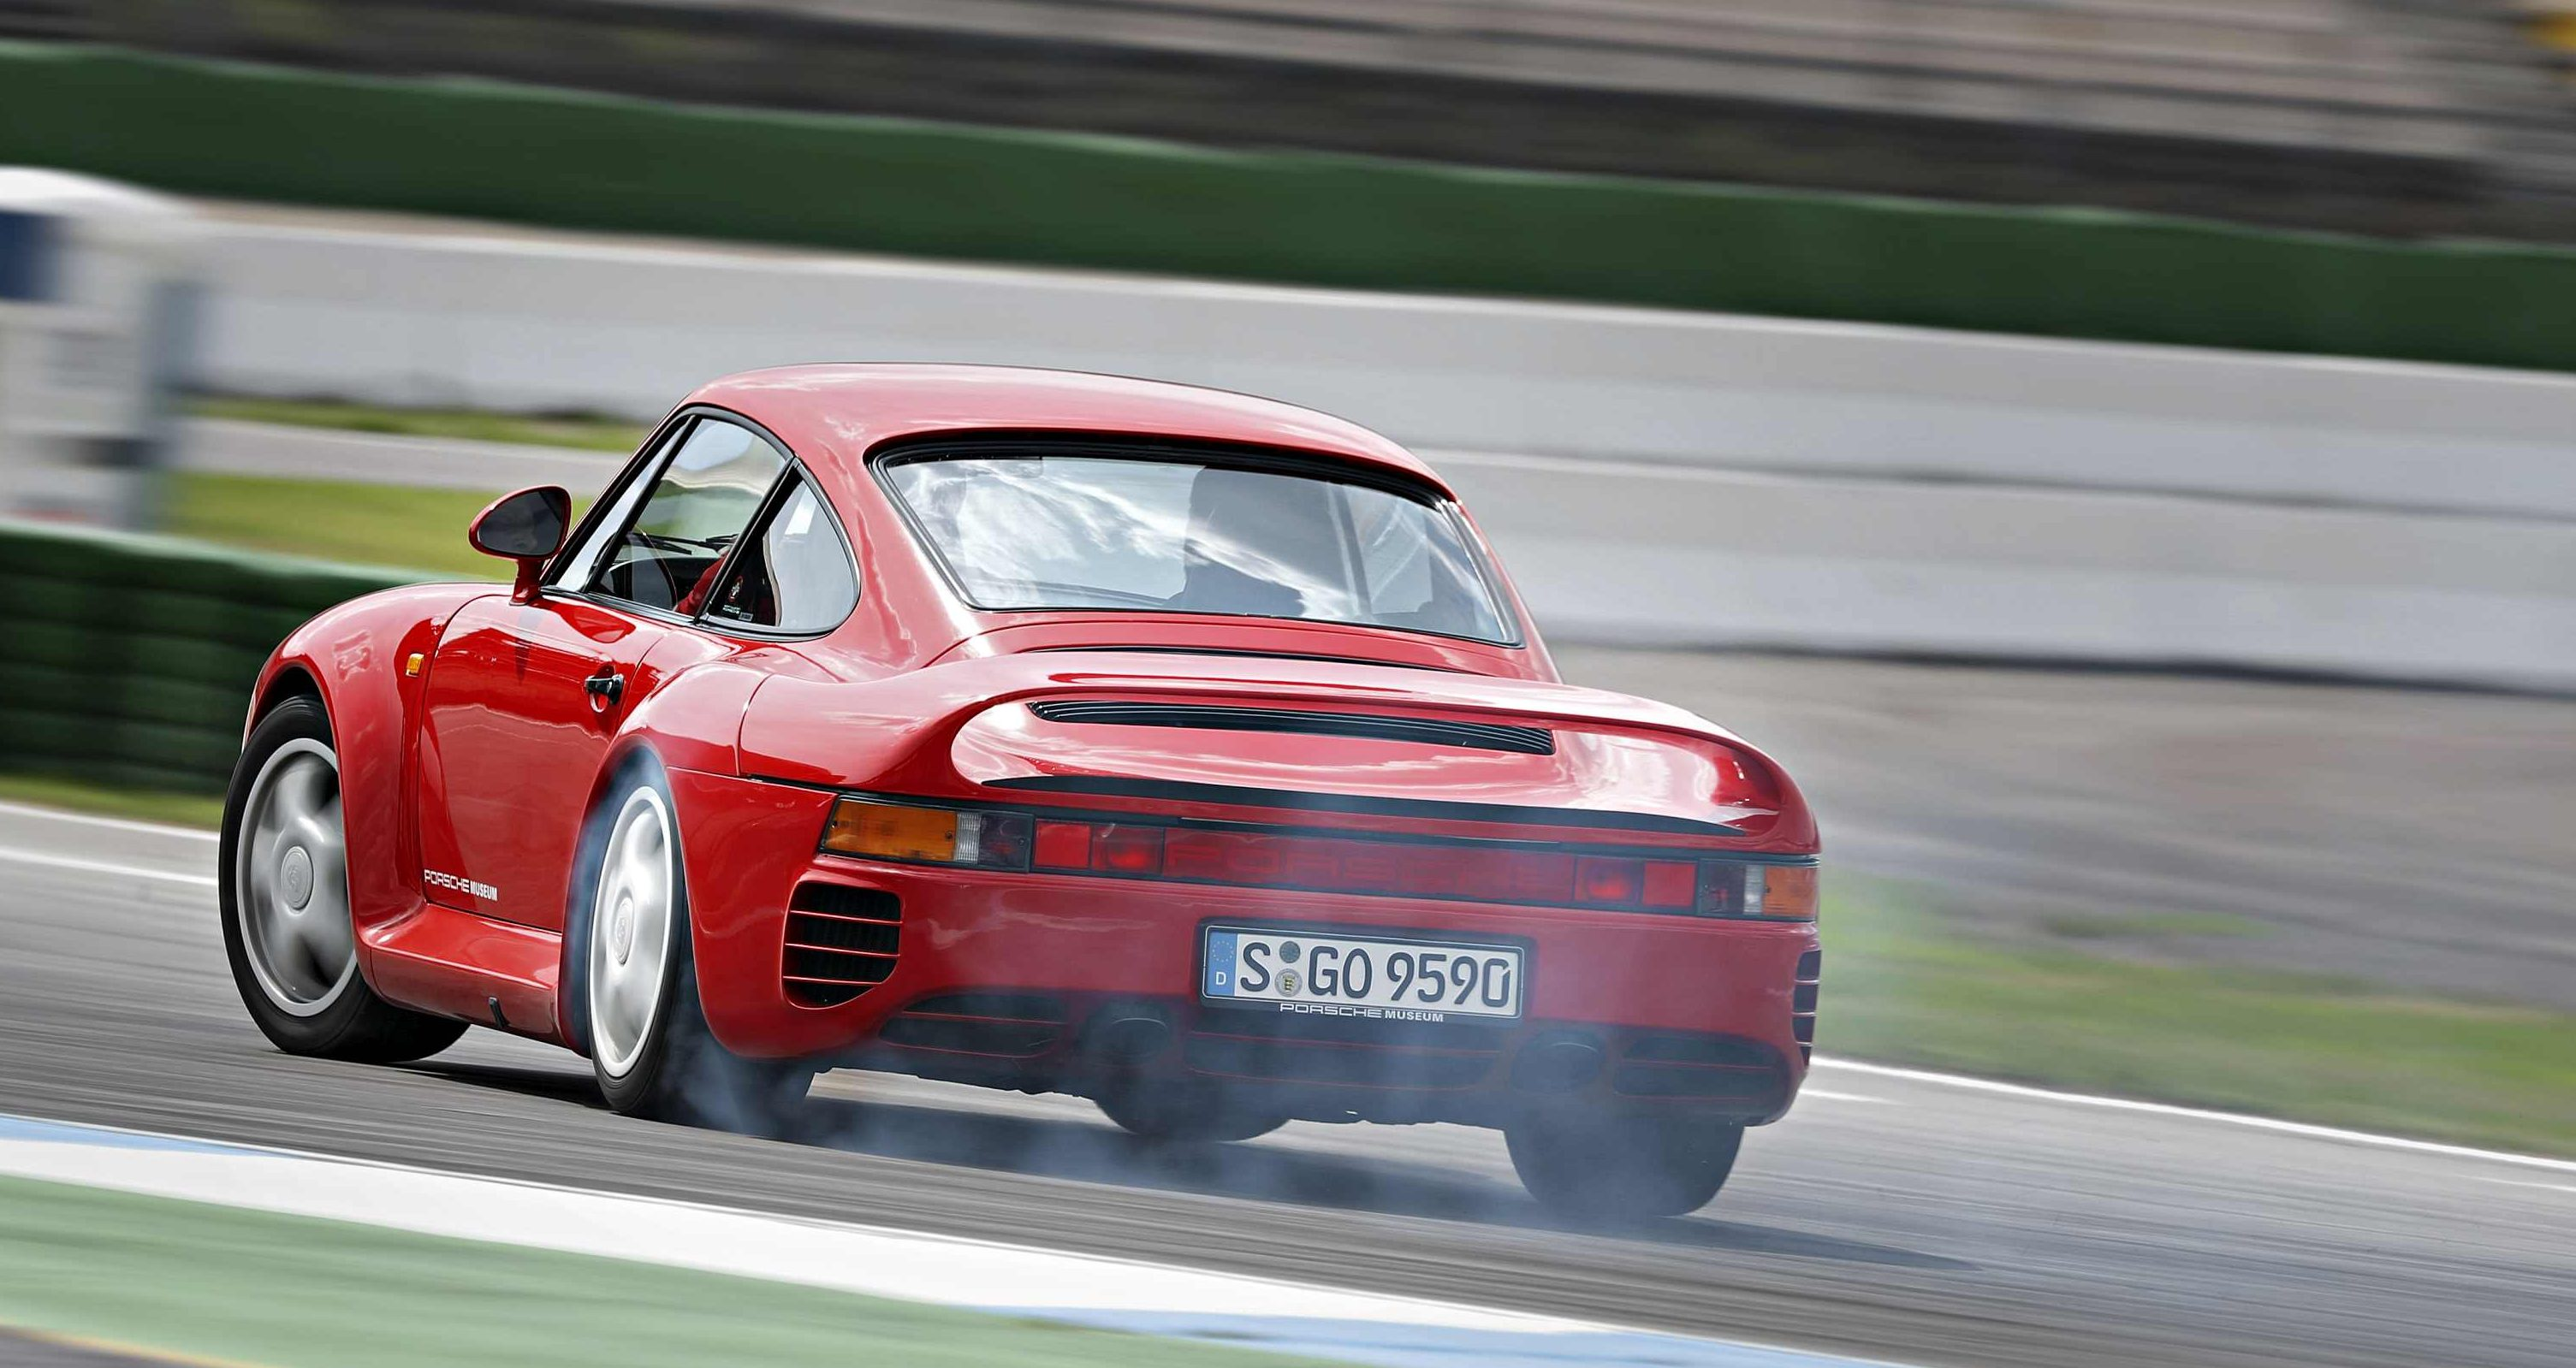 Image for Stari auto – novi test, Porsche 959